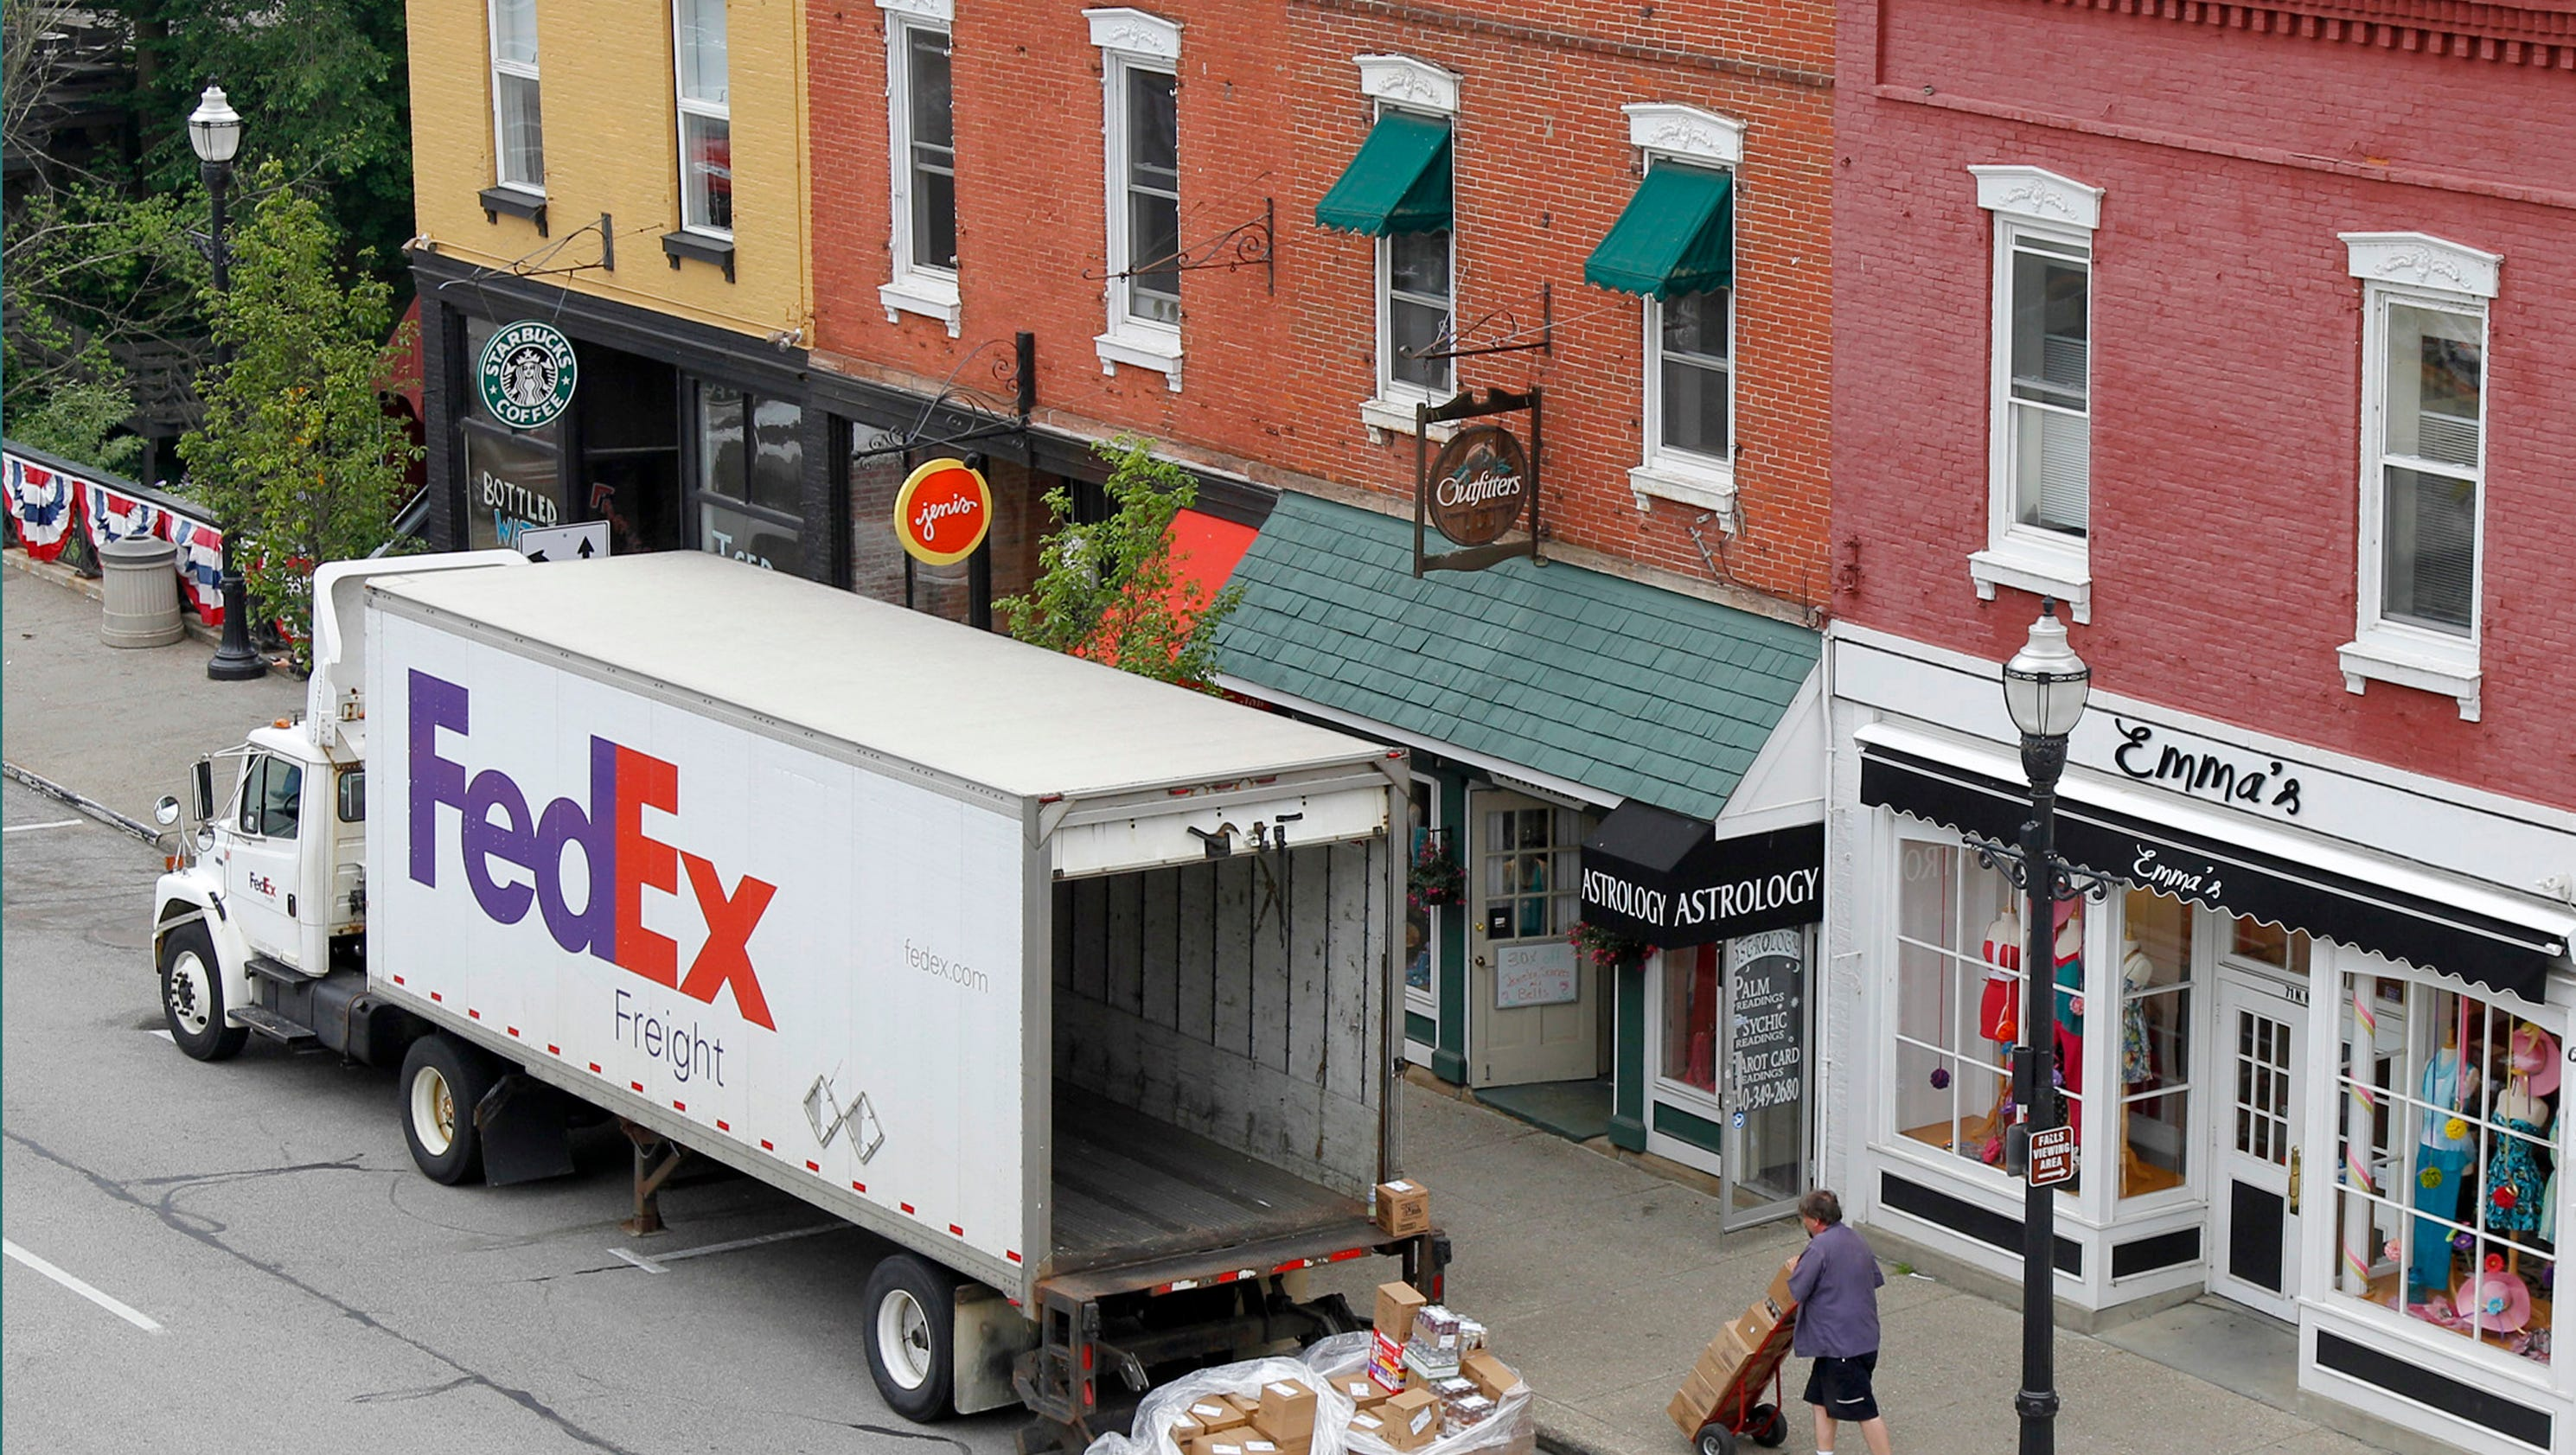 Workers At Fedex And Honeywell Latest To Benefit From Corporate Tax